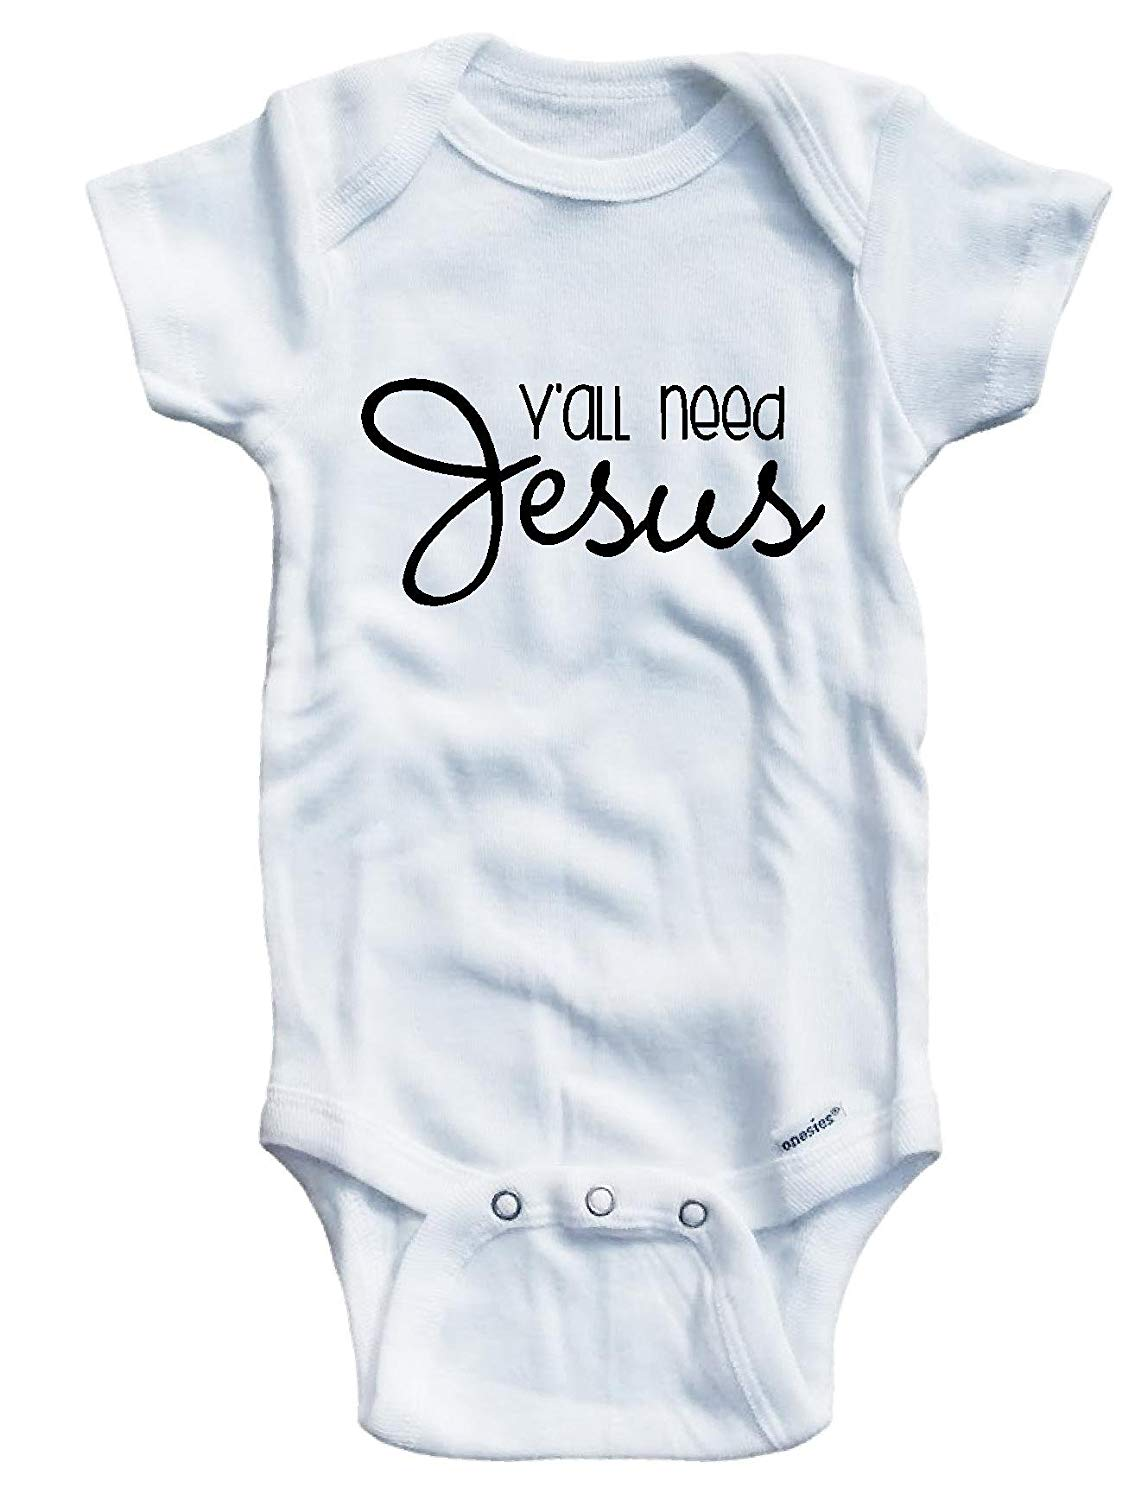 Baby Tee Time Boys Y'all need Jesus One piece